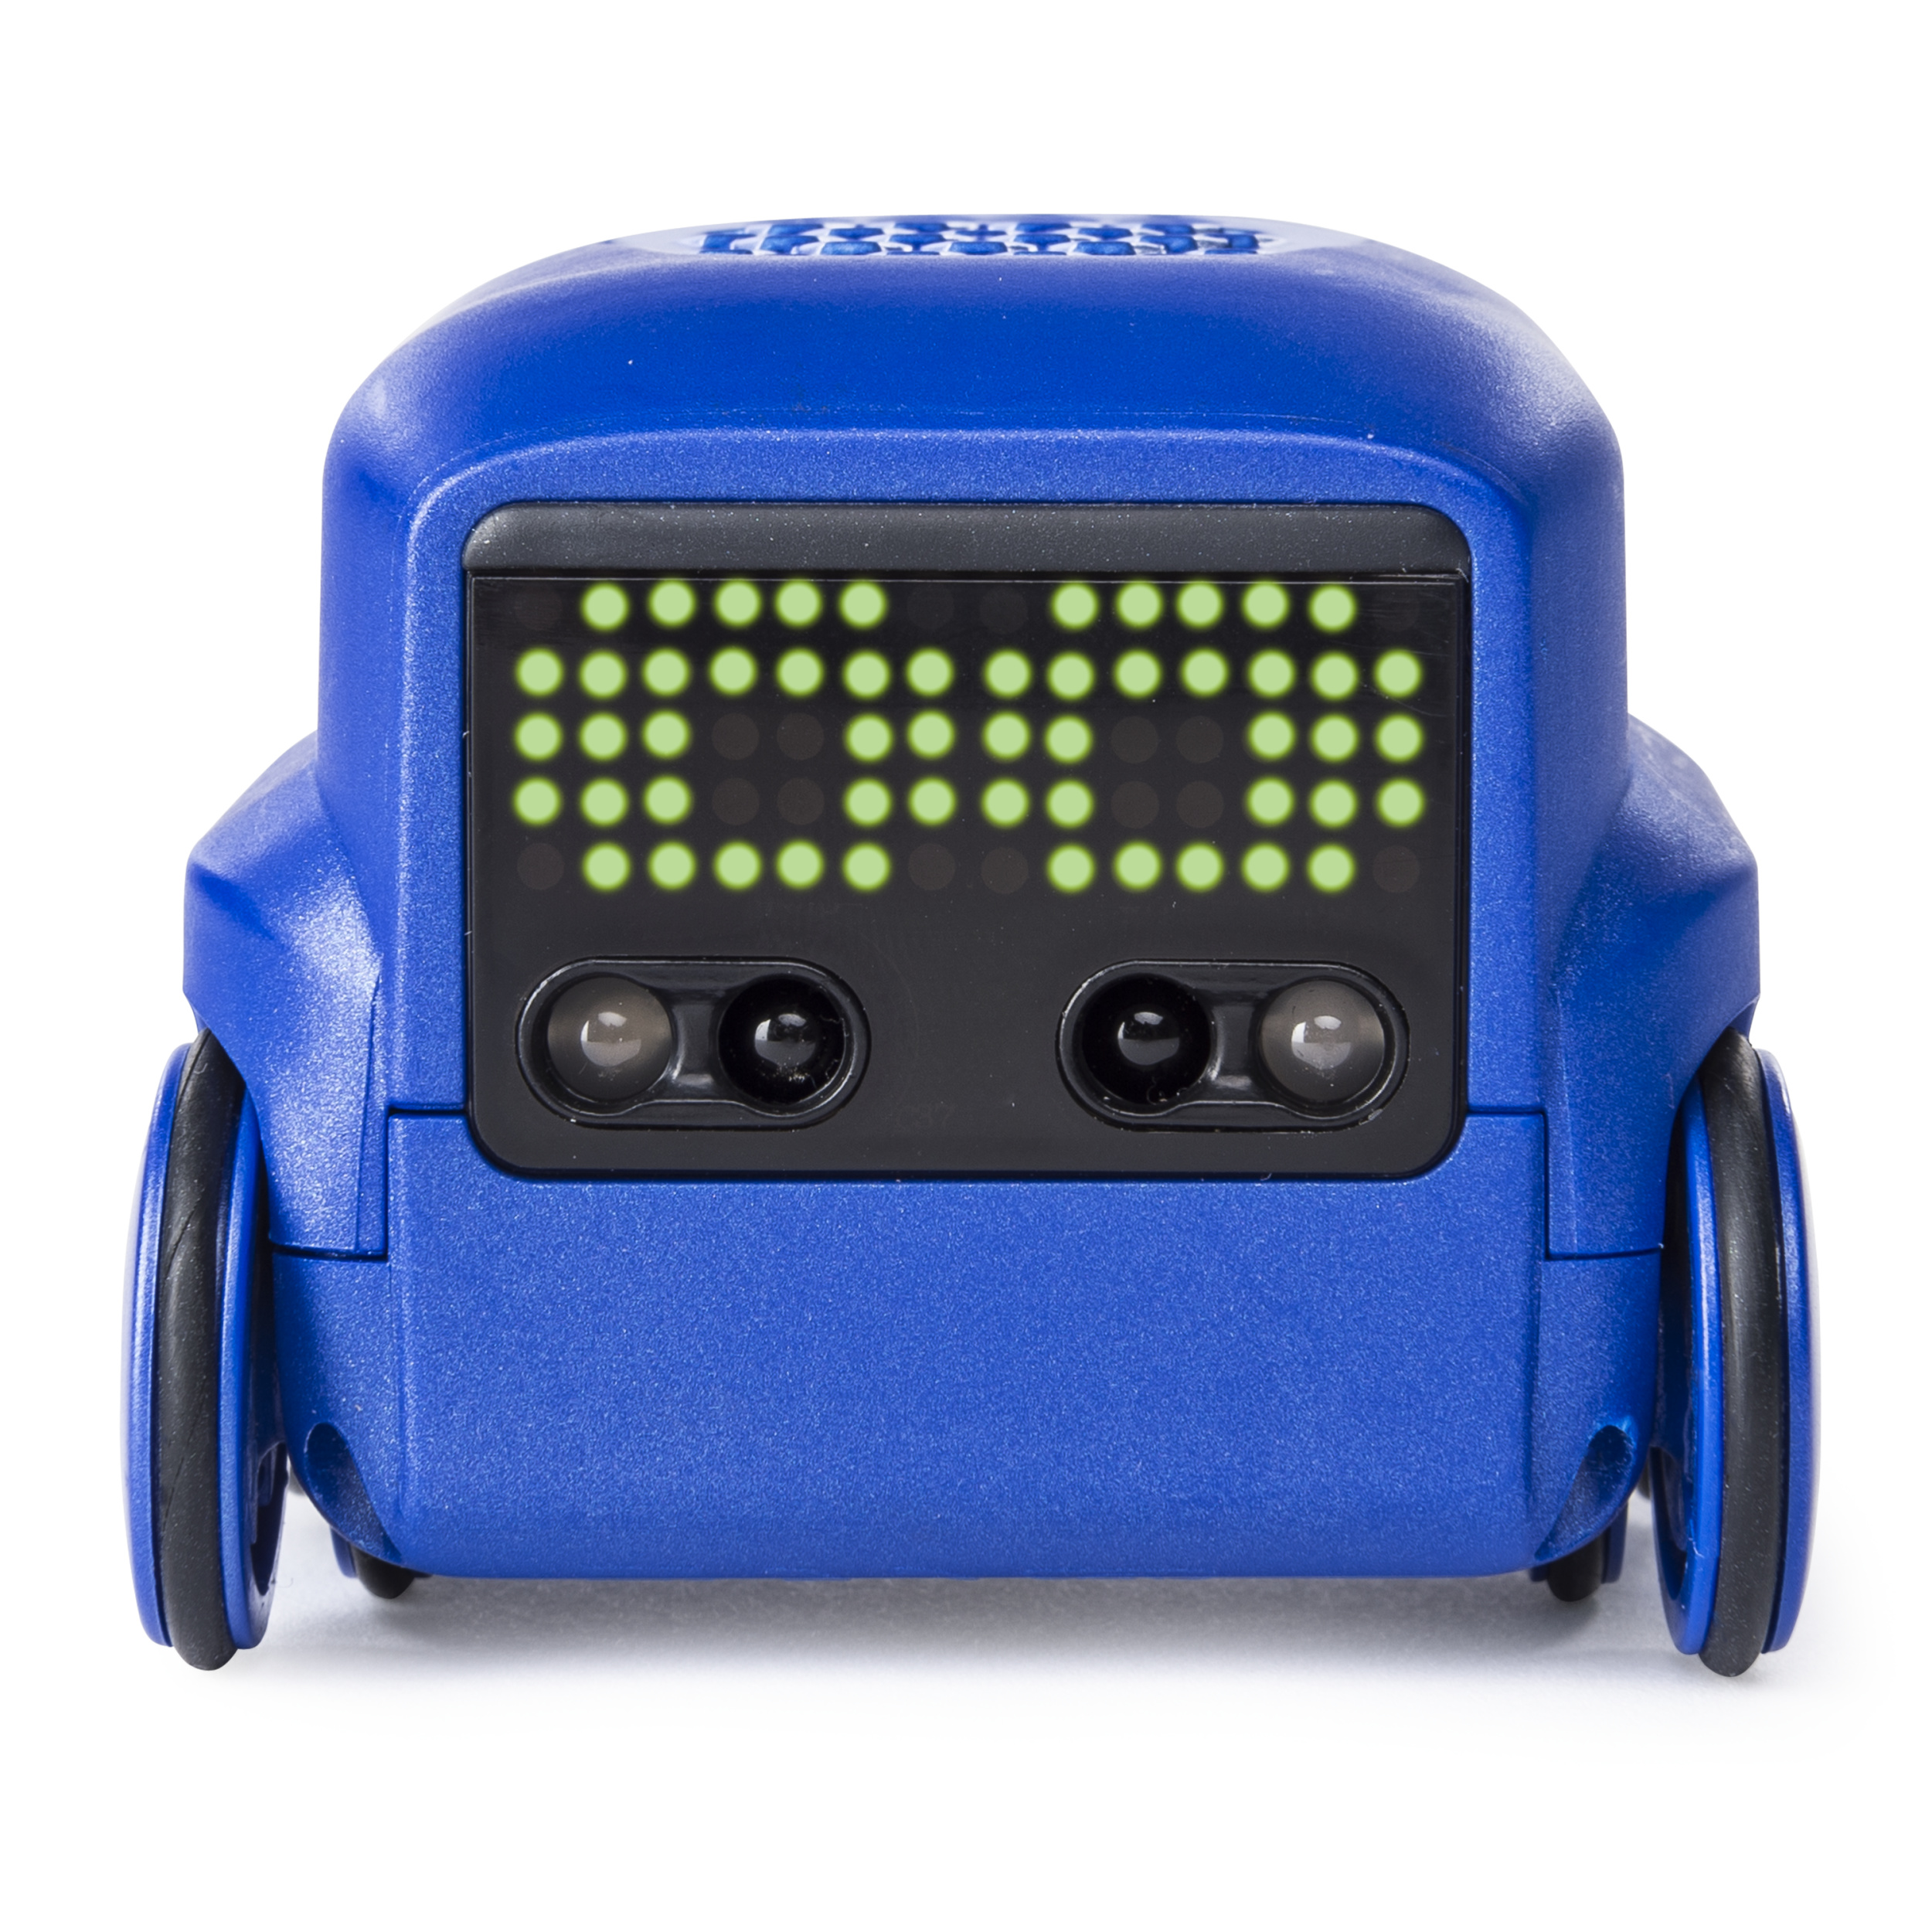 Boxer Interactive A.I. Robot Toy with Personality and Emotions - Blue